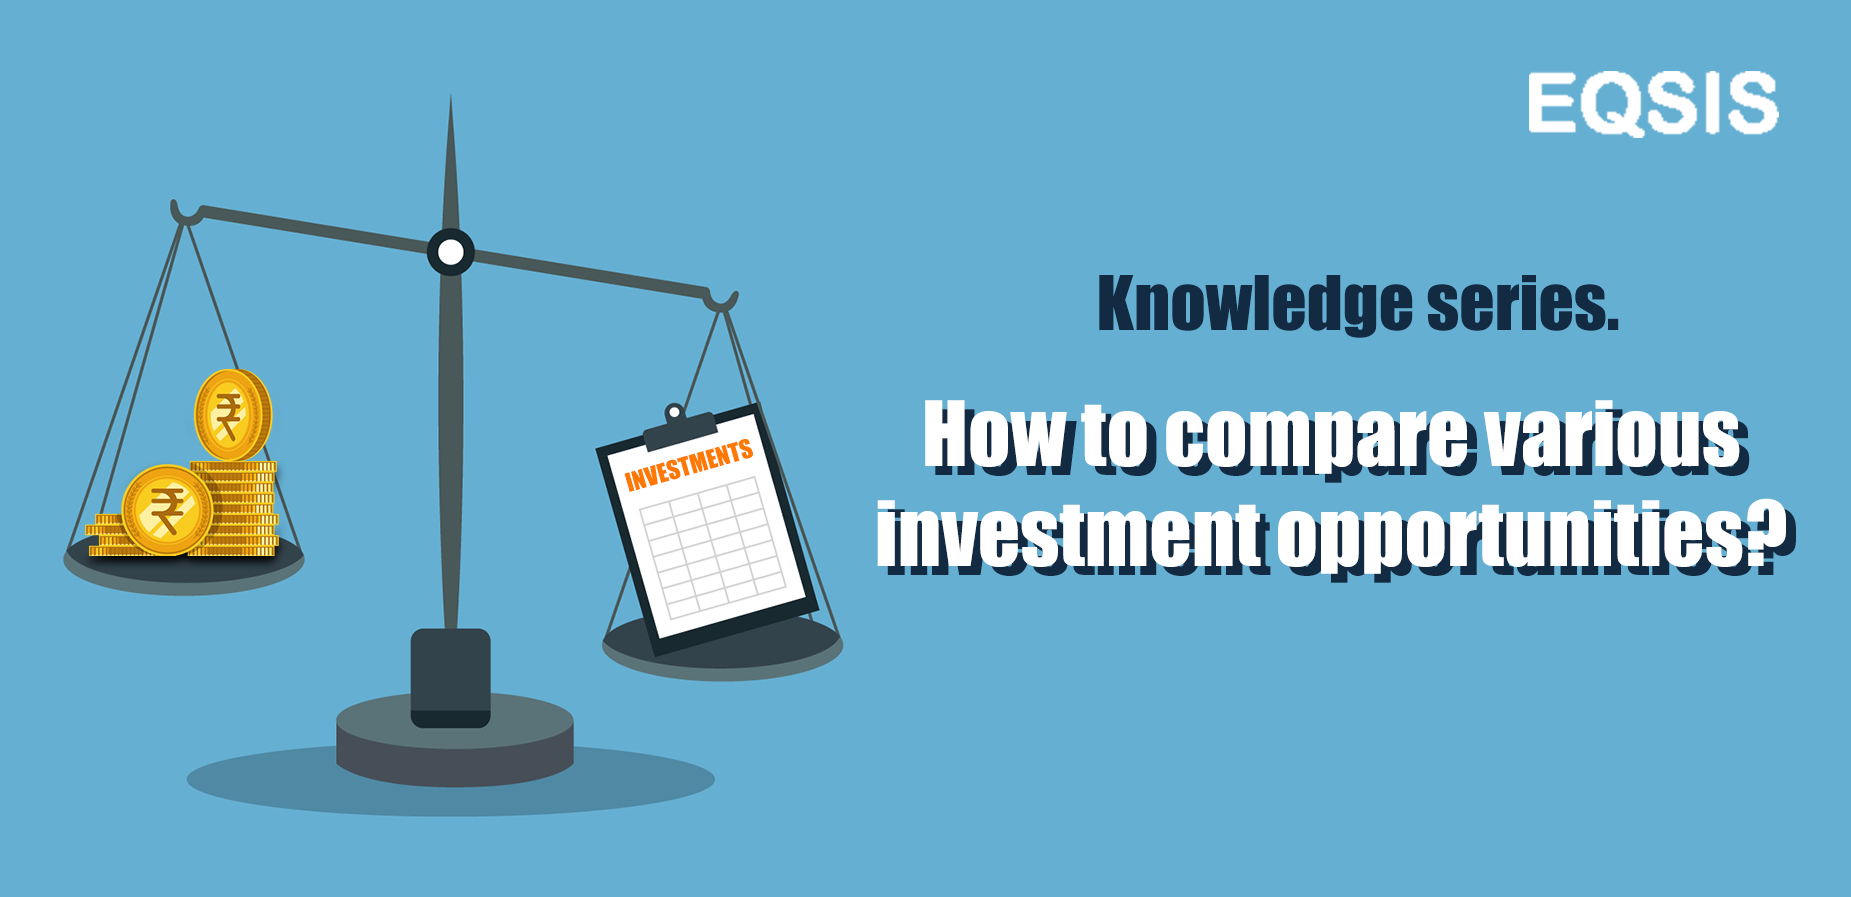 How to compare various investments opportunities